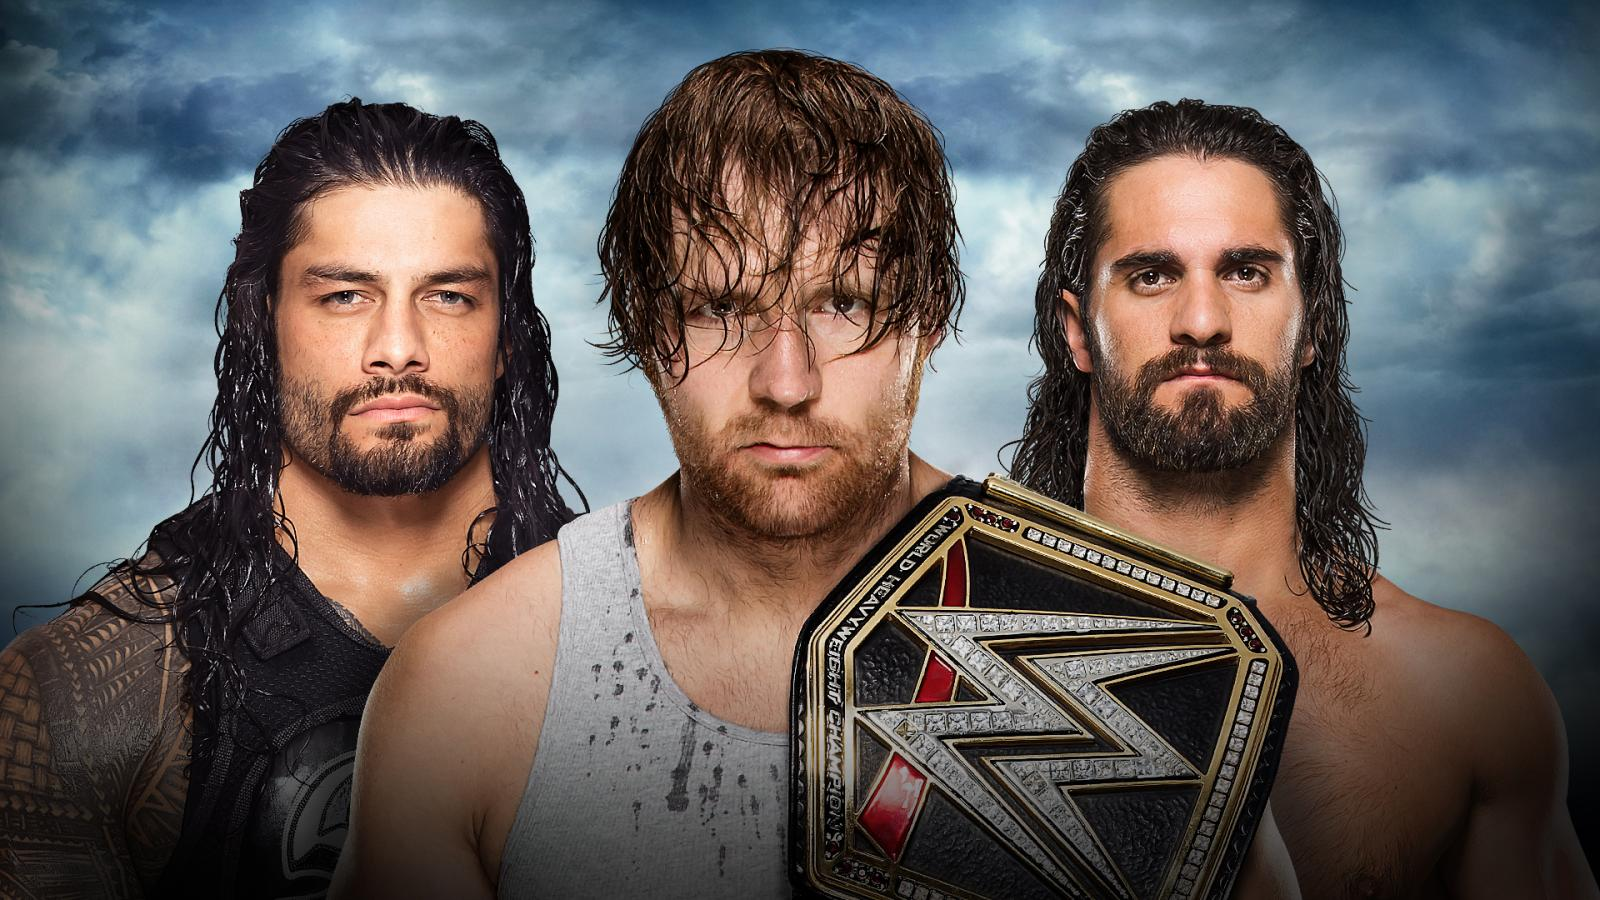 Battleground 2016 - Roman Reigns Vs. Dean Ambrose Vs. Seth Rollins